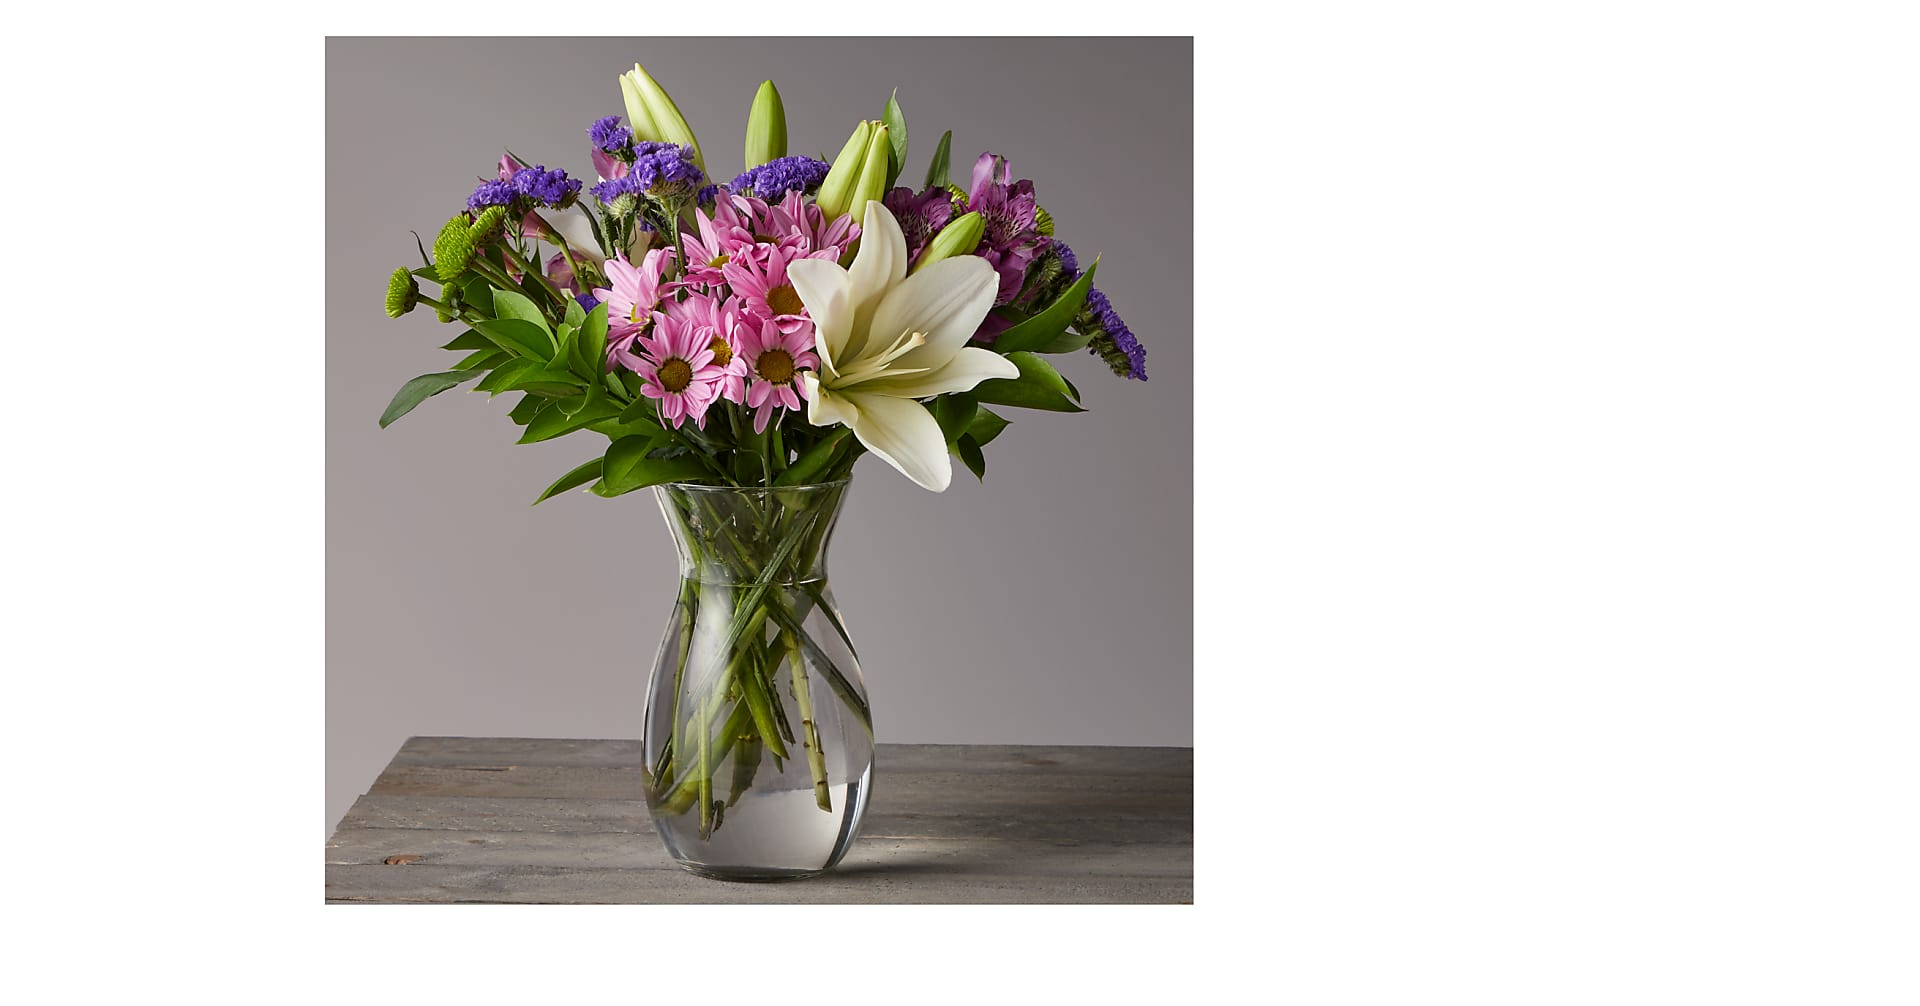 Lavender Fields Mixed Flower Bouquet with Vase - Image 1 Of 2